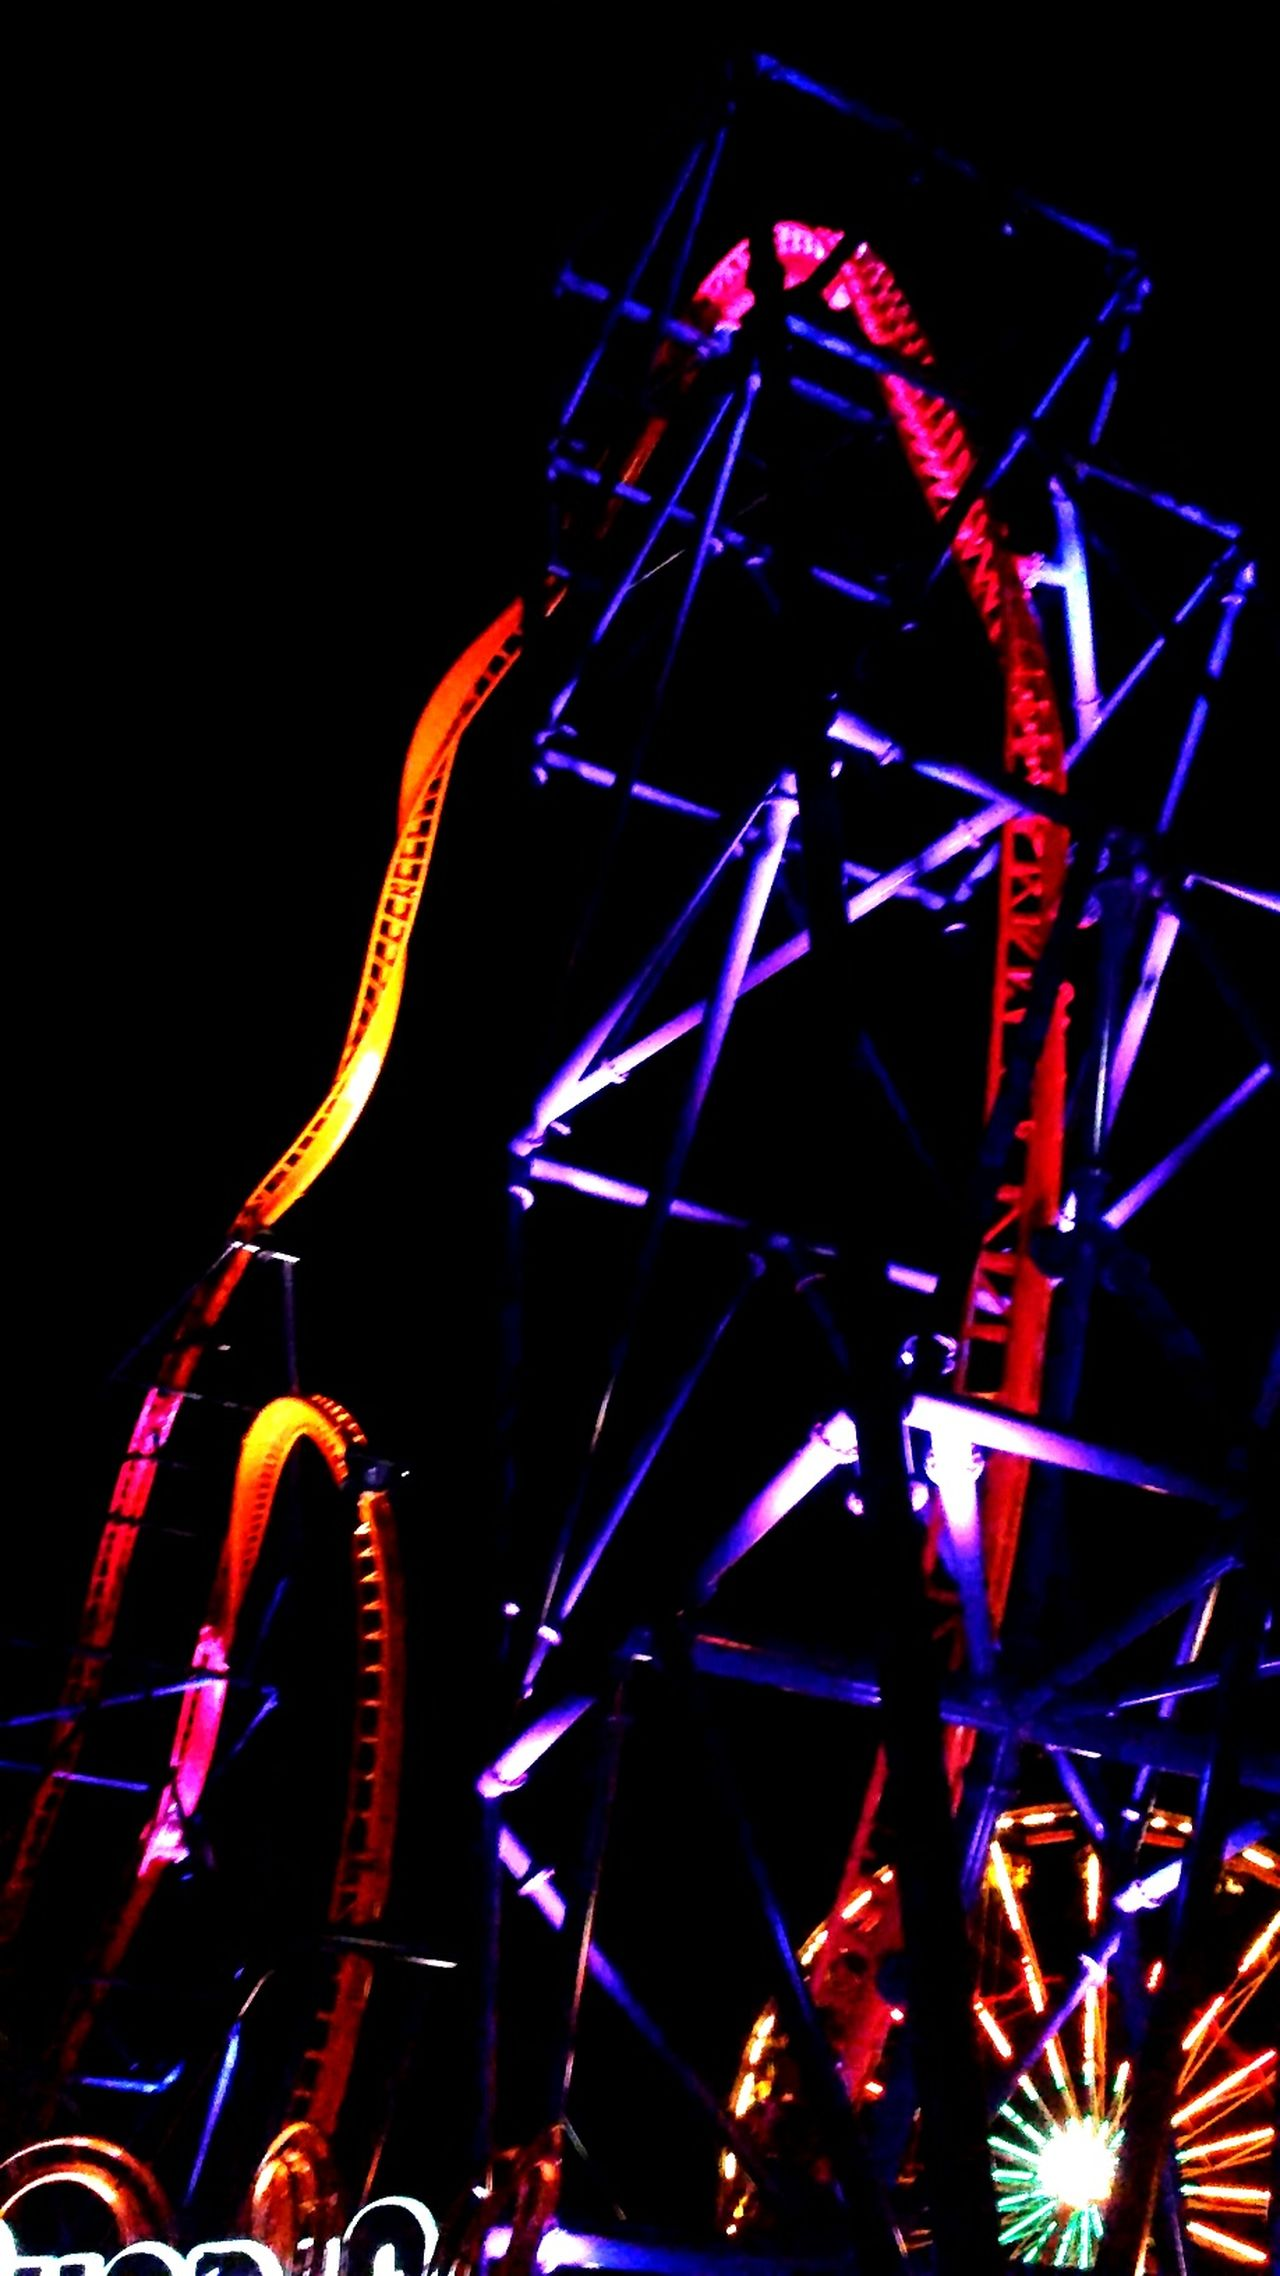 Rollercoaster Night Black Background Illuminated Themepark Connecticut Newengland Excitementforeveryone Psycosis Lakecompounce Thrill Rides